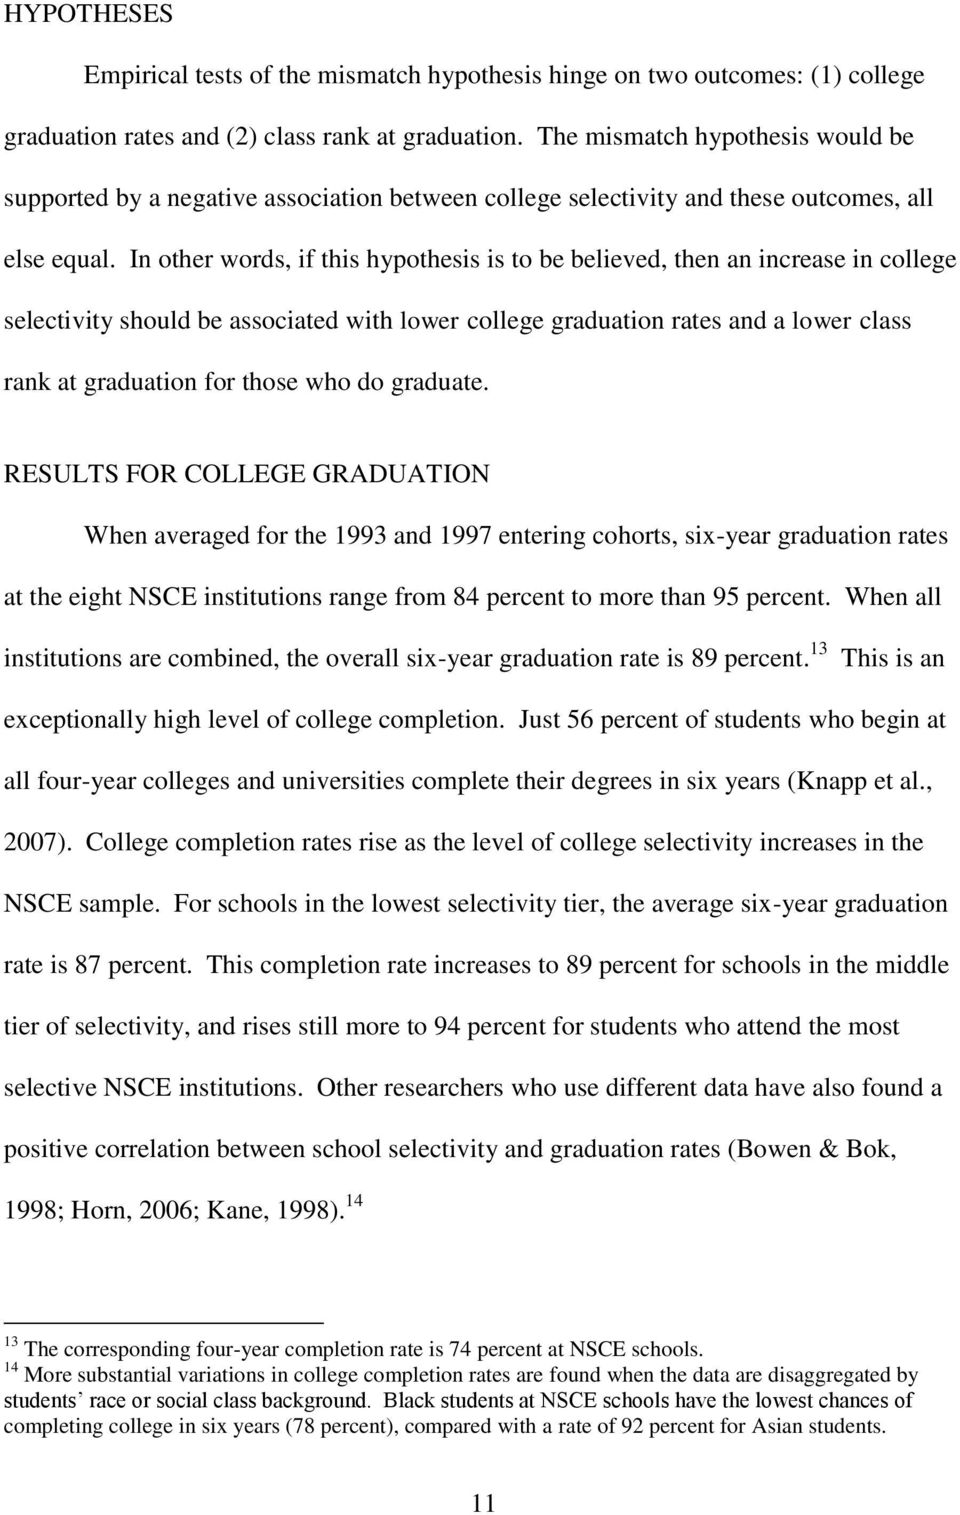 In other words, if this hypothesis is to be believed, then an increase in college selectivity should be associated with lower college graduation rates and a lower class rank at graduation for those